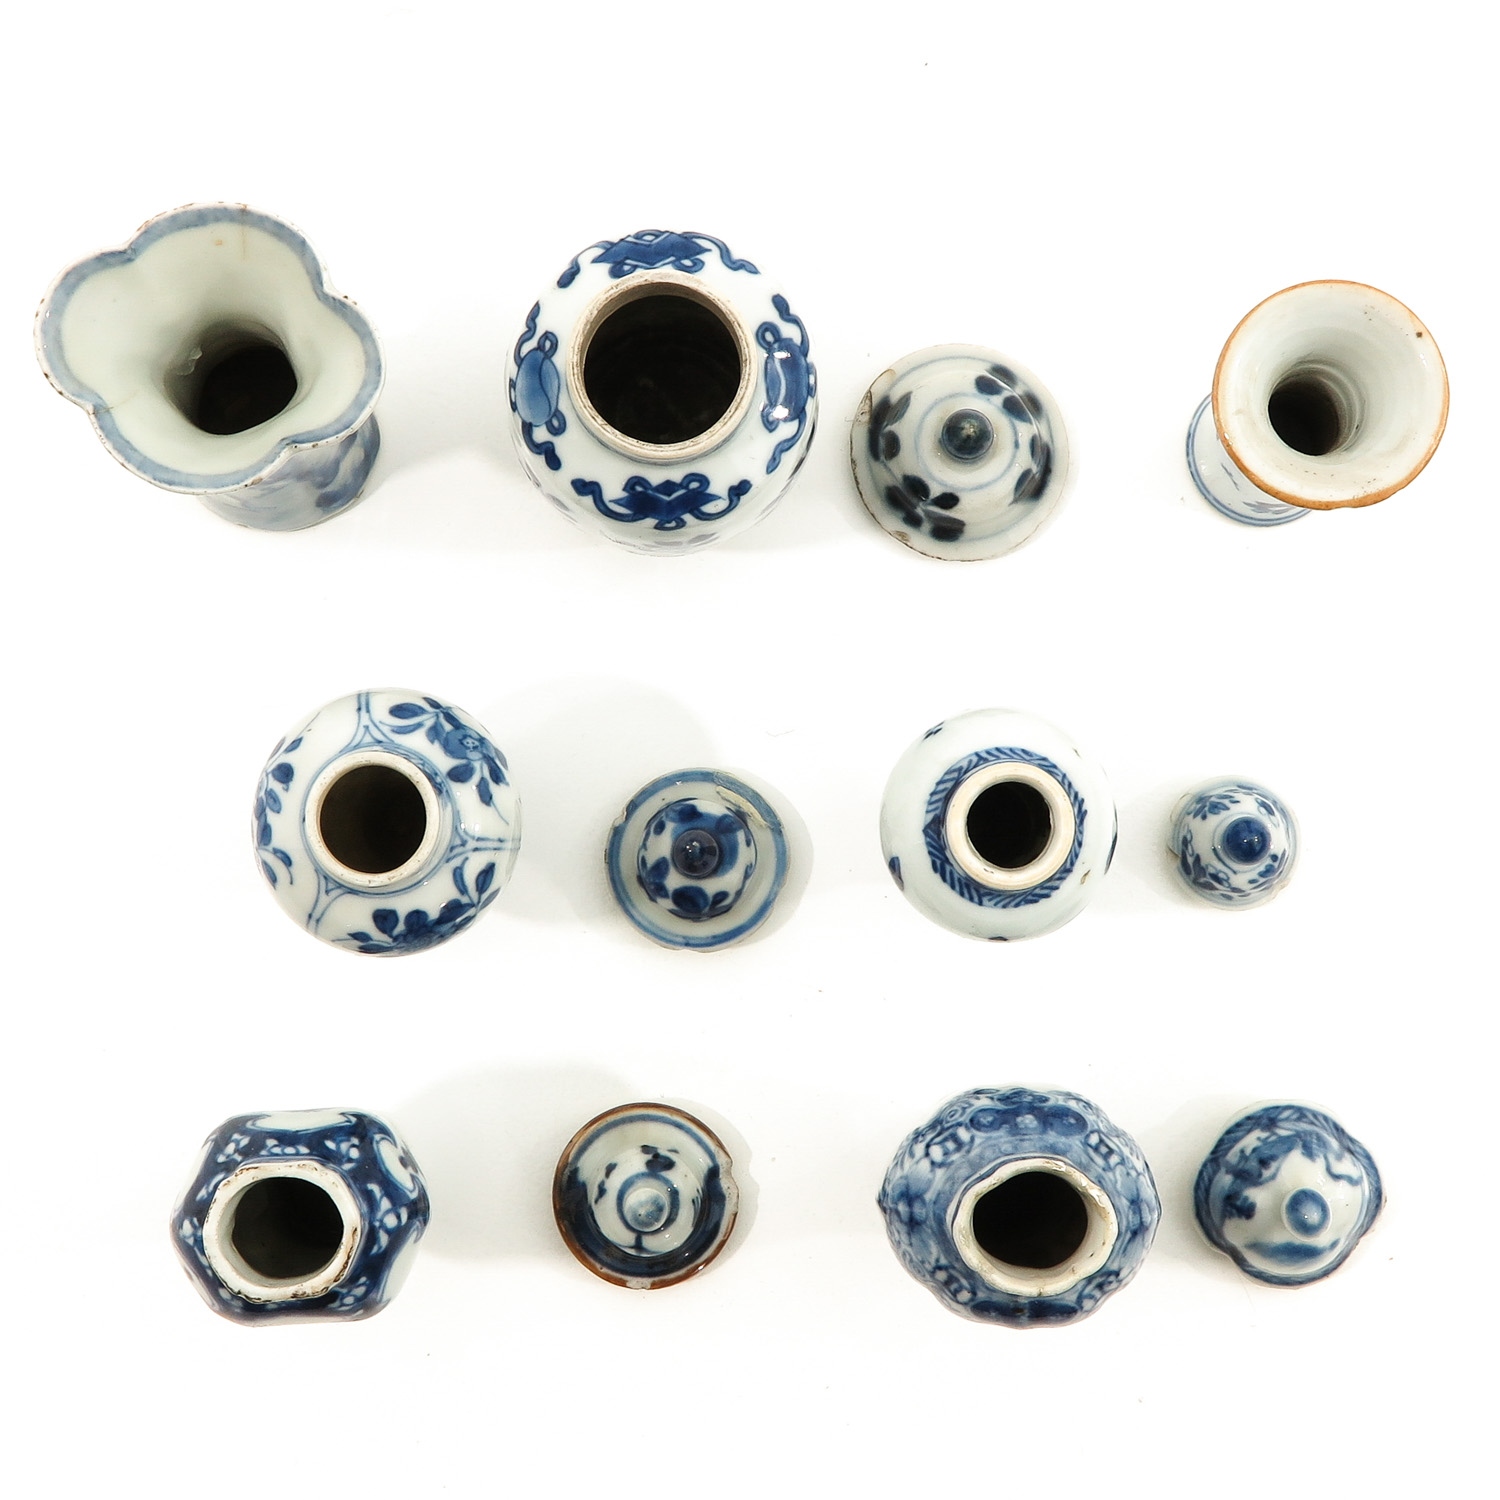 A Collection of 7 Miniature Vases - Image 5 of 9